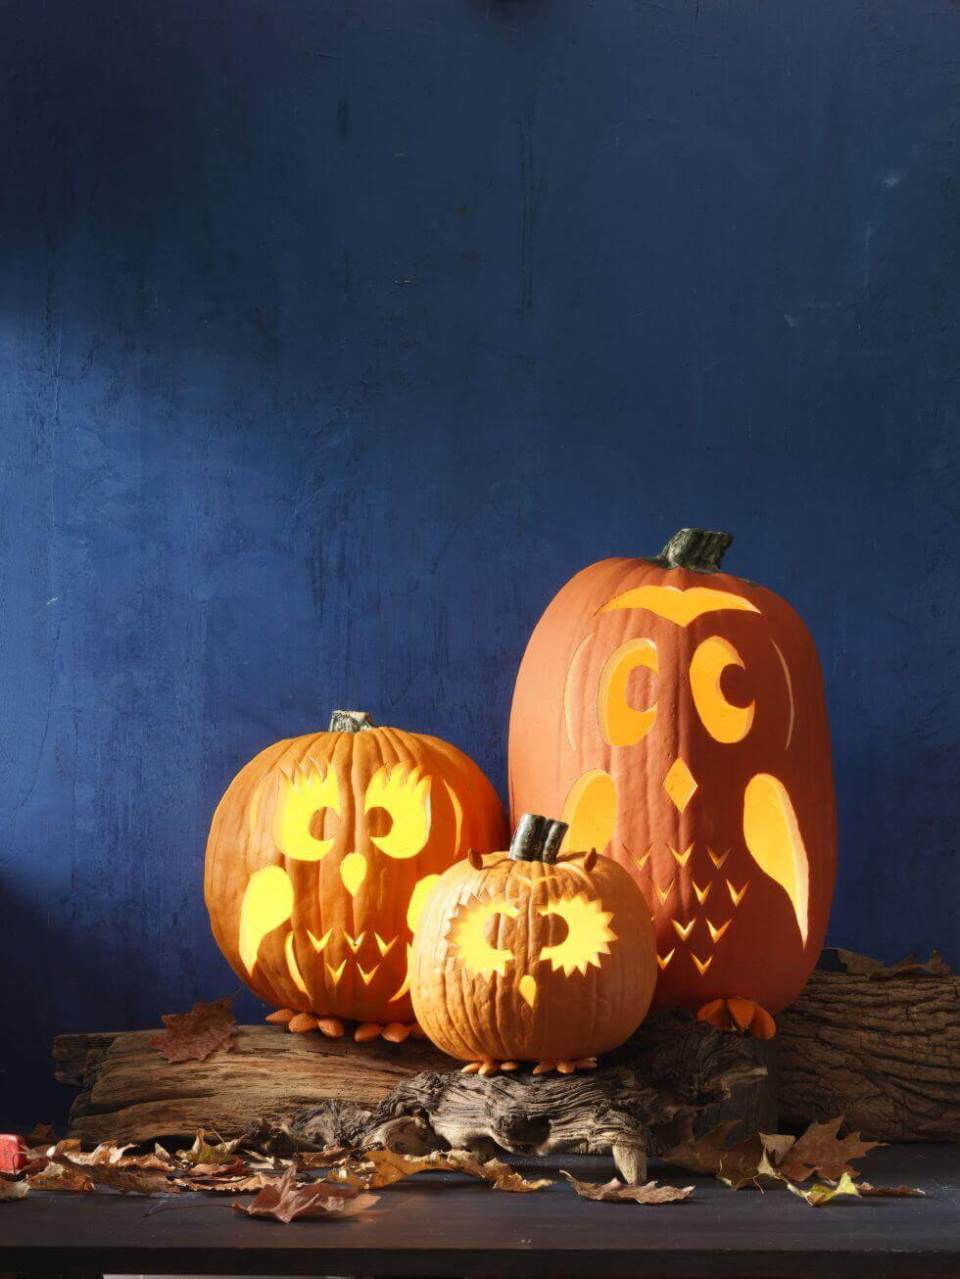 DIY Pumpkin Carving Ideas: Hoo Wants Another Owl Pattern